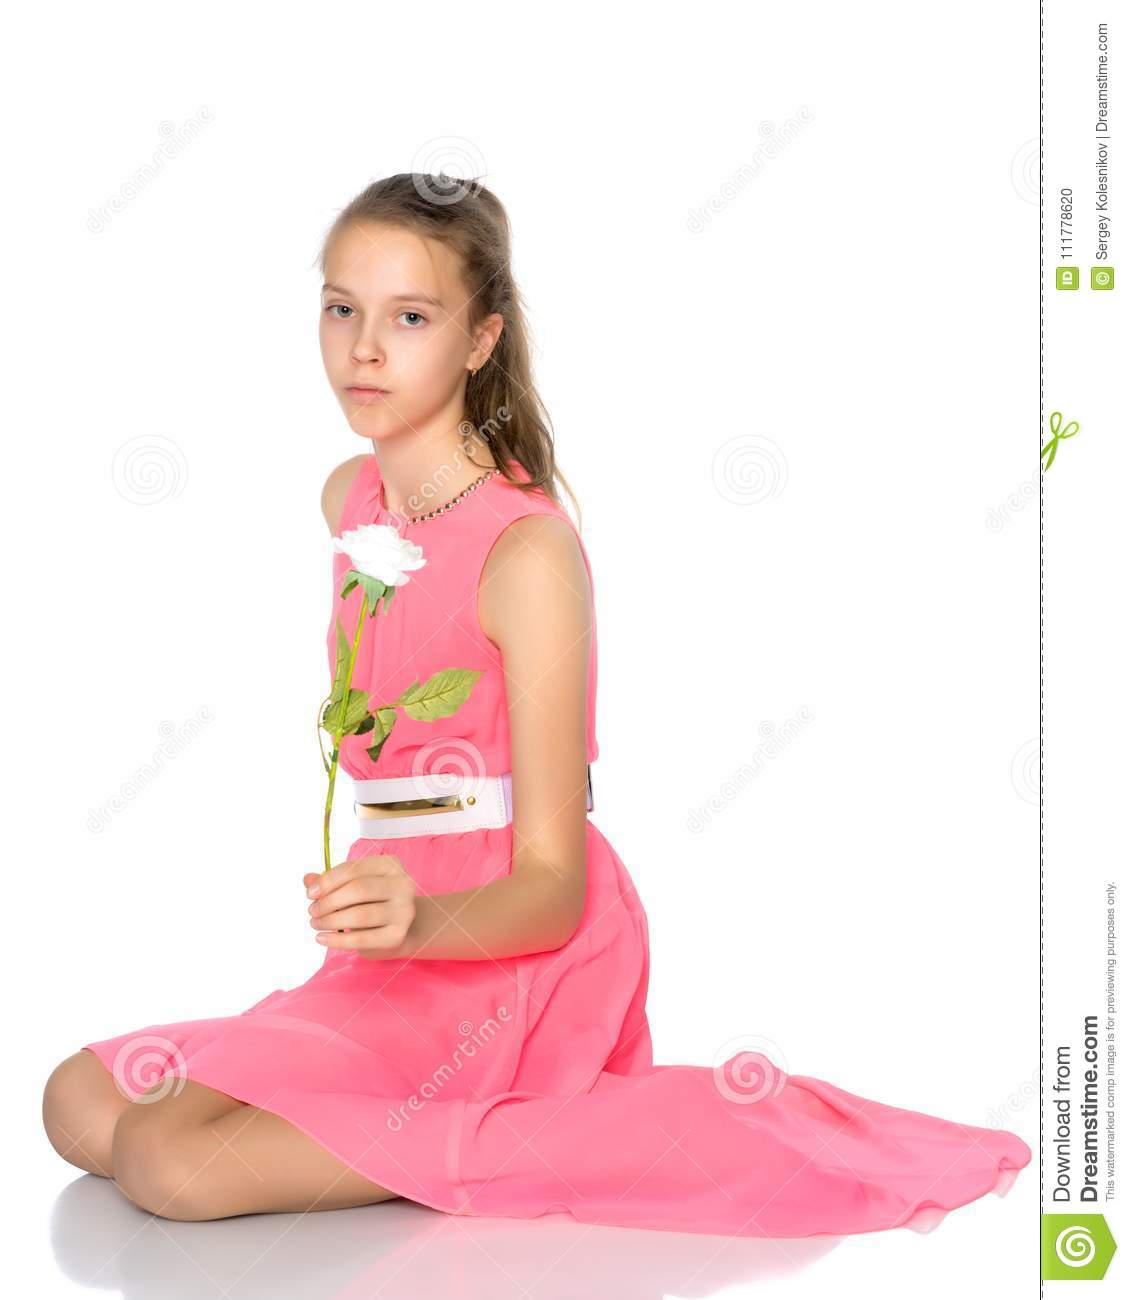 Beautiful girl with a flower.